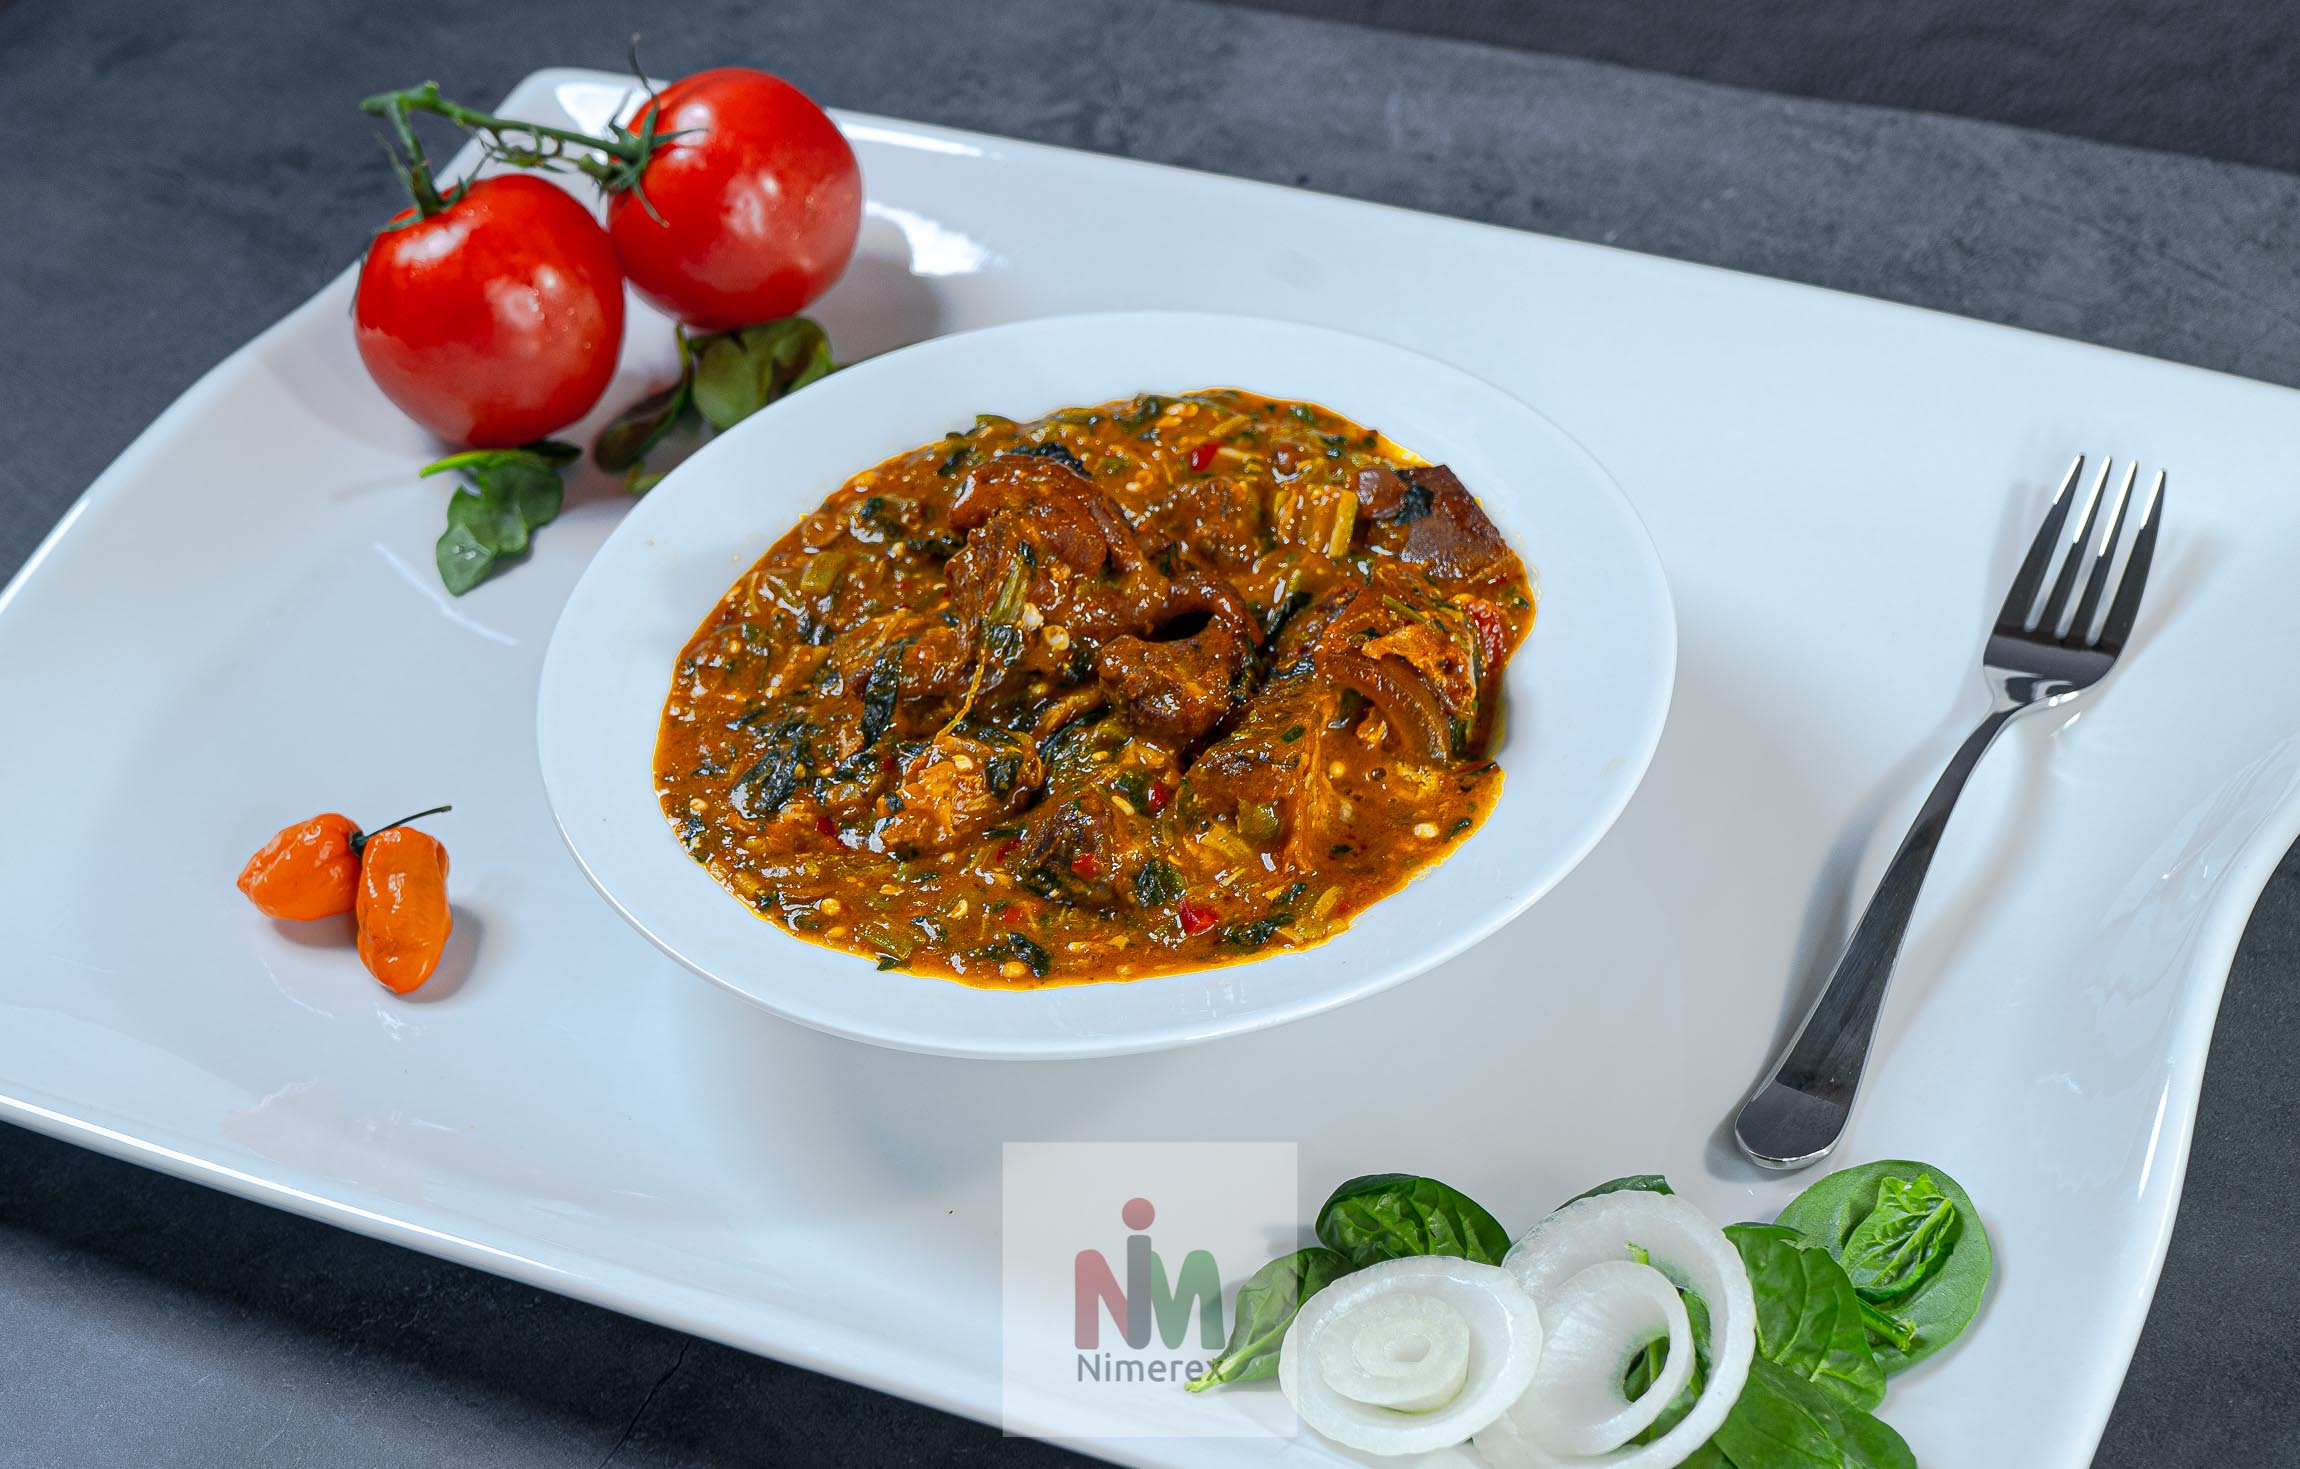 Nimerex now delivers Ogbono soup to homes across America. Get it Today.